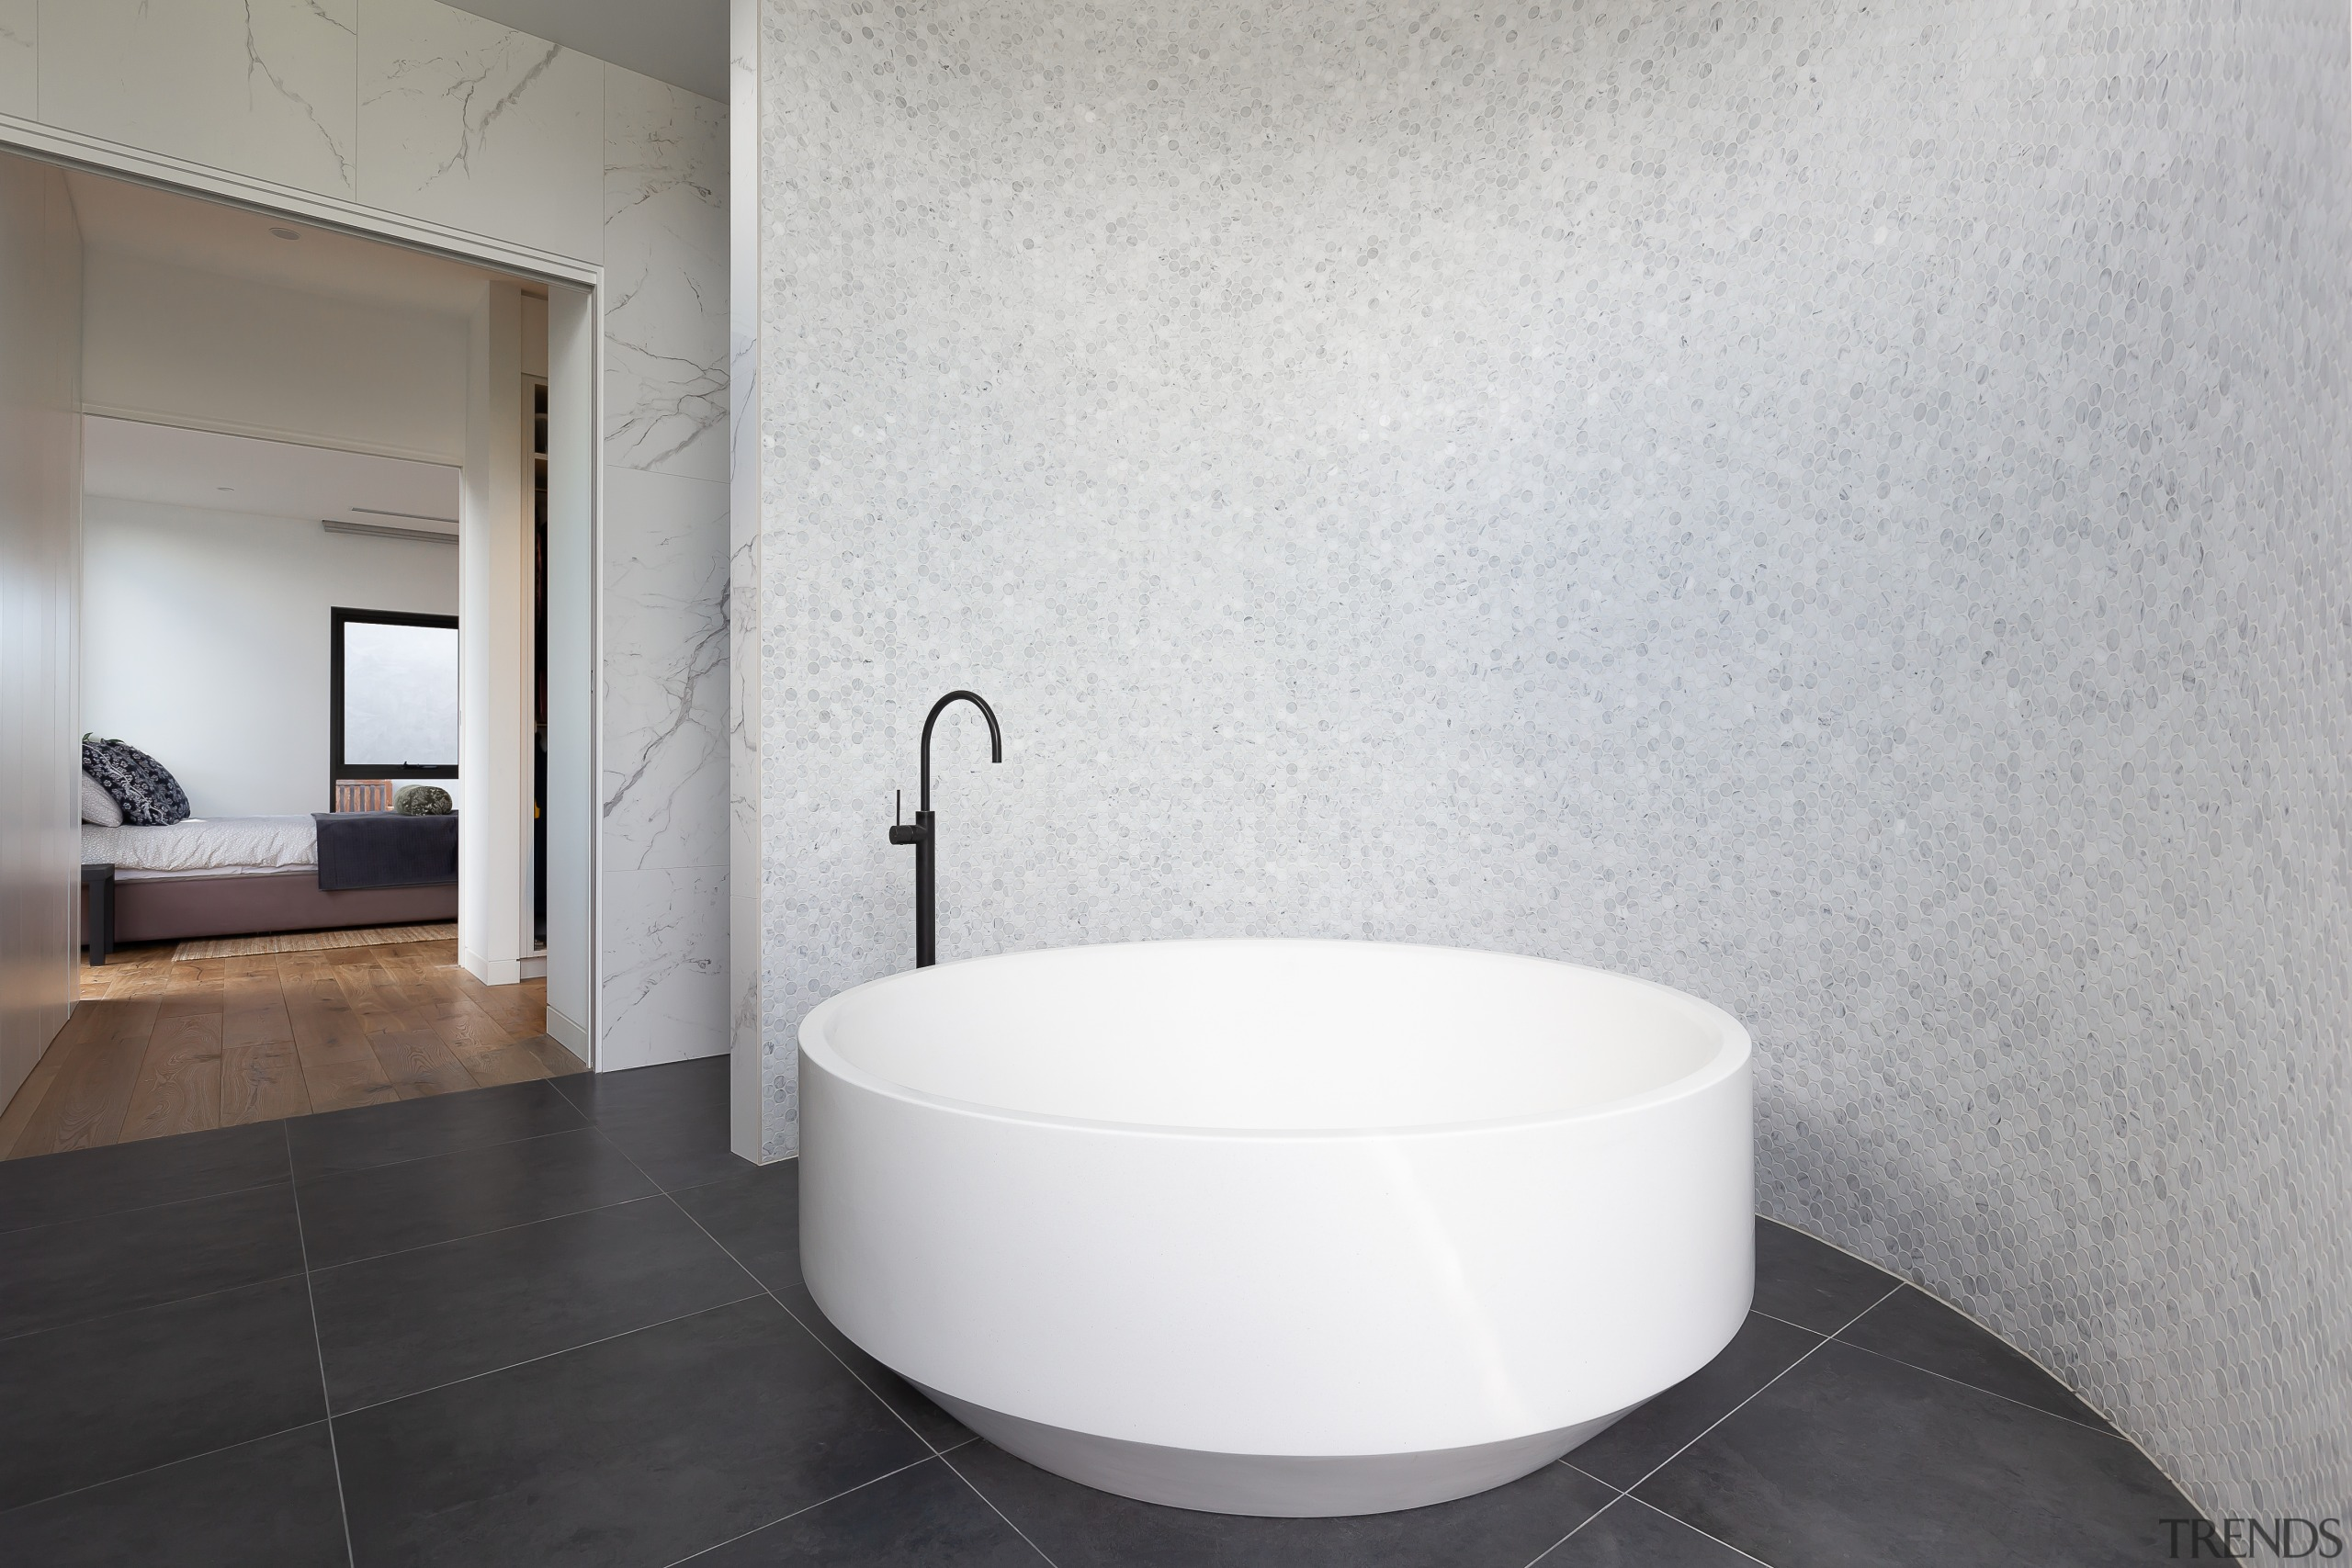 This stunning symmetrical tub is made all the gray, white